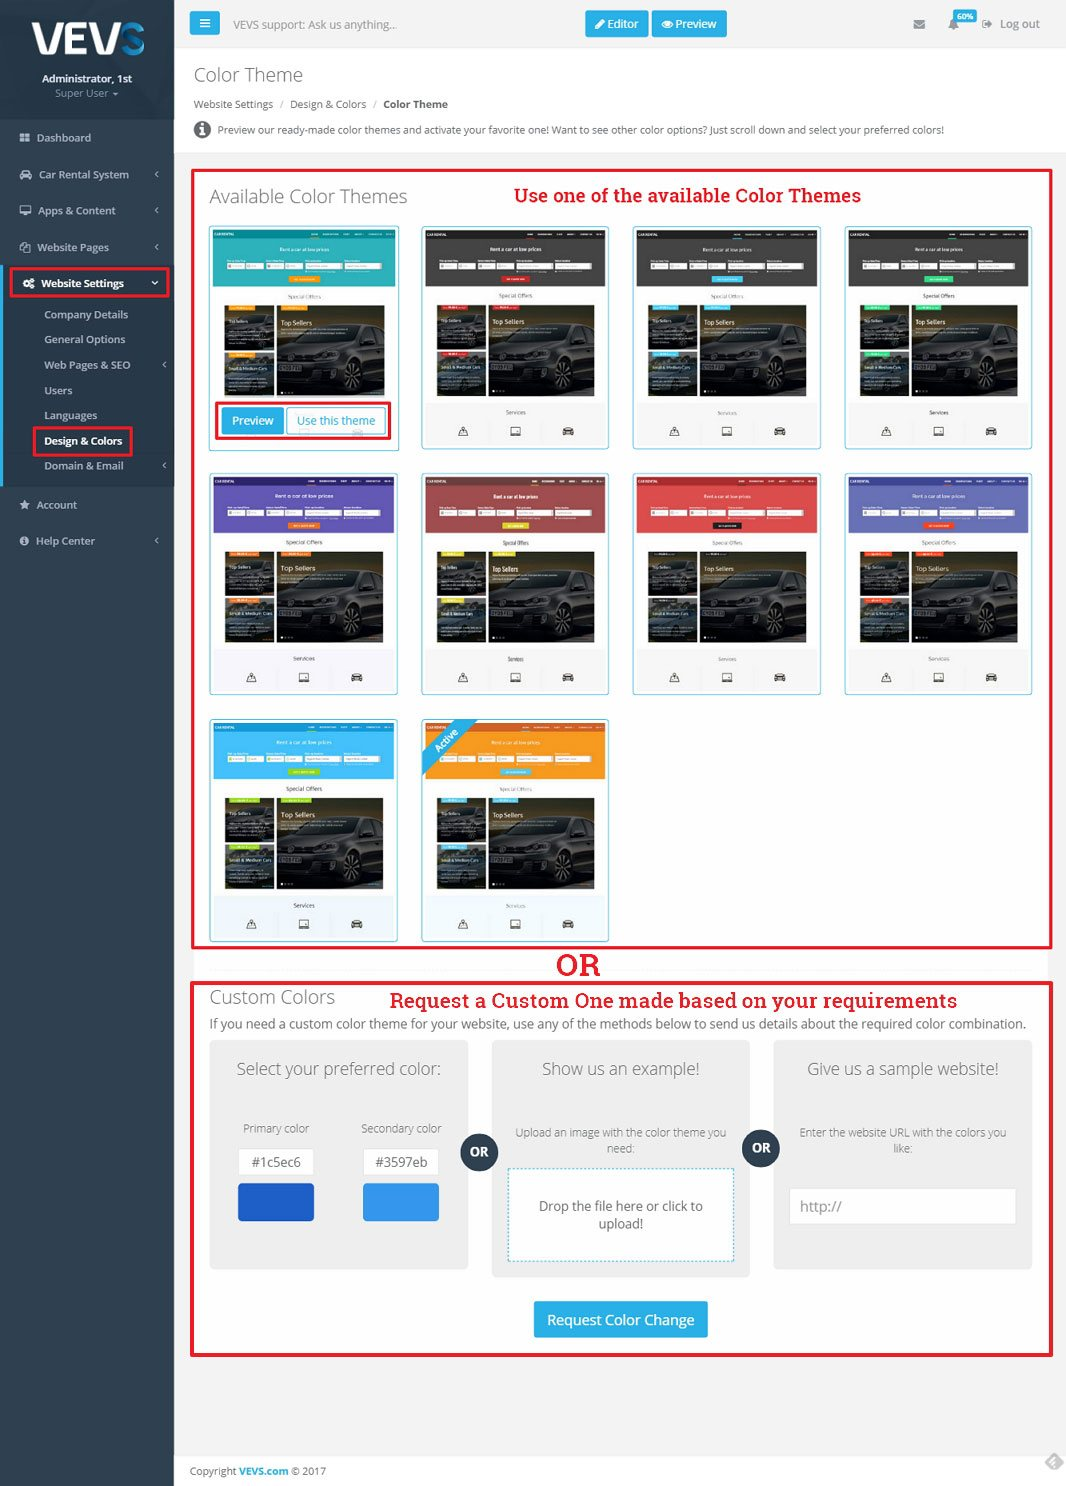 VEVS CMS Color Theme grid and request form